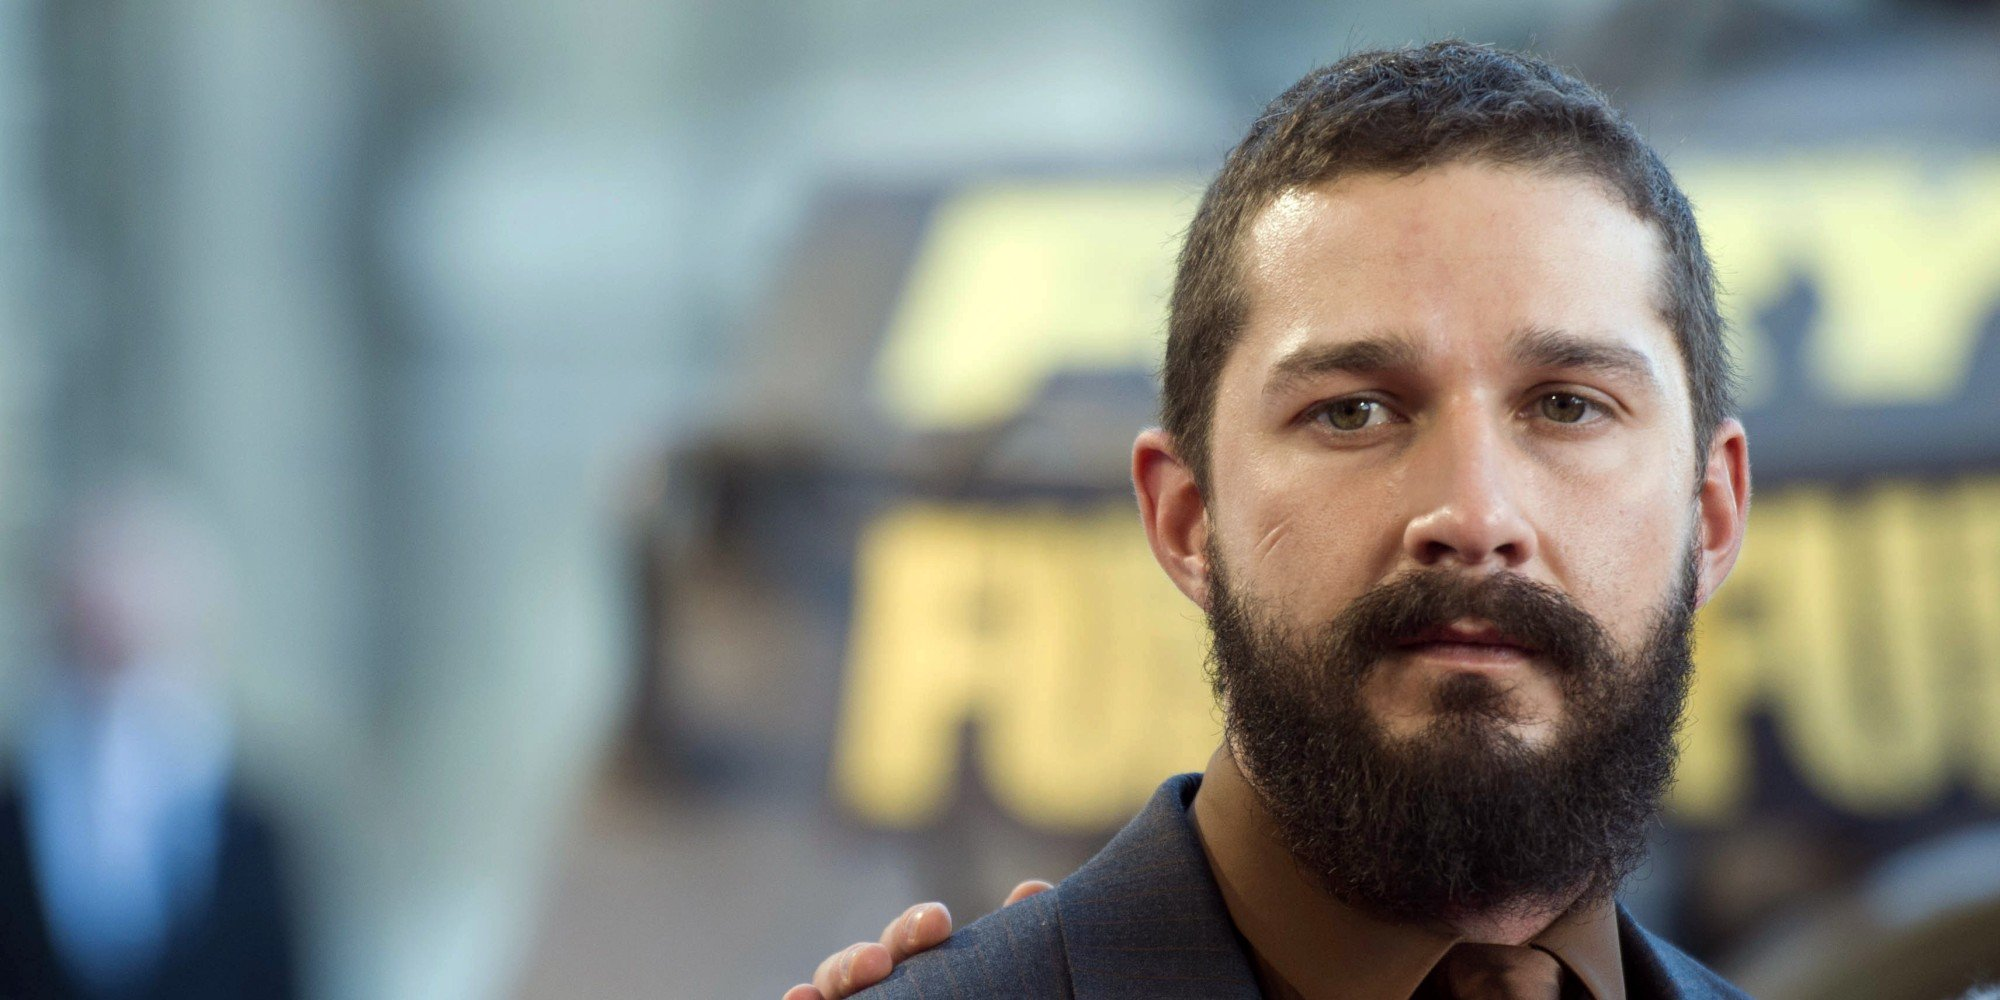 Shia LaBeouf Blames White Privilege for His Arrest and Racist Rants